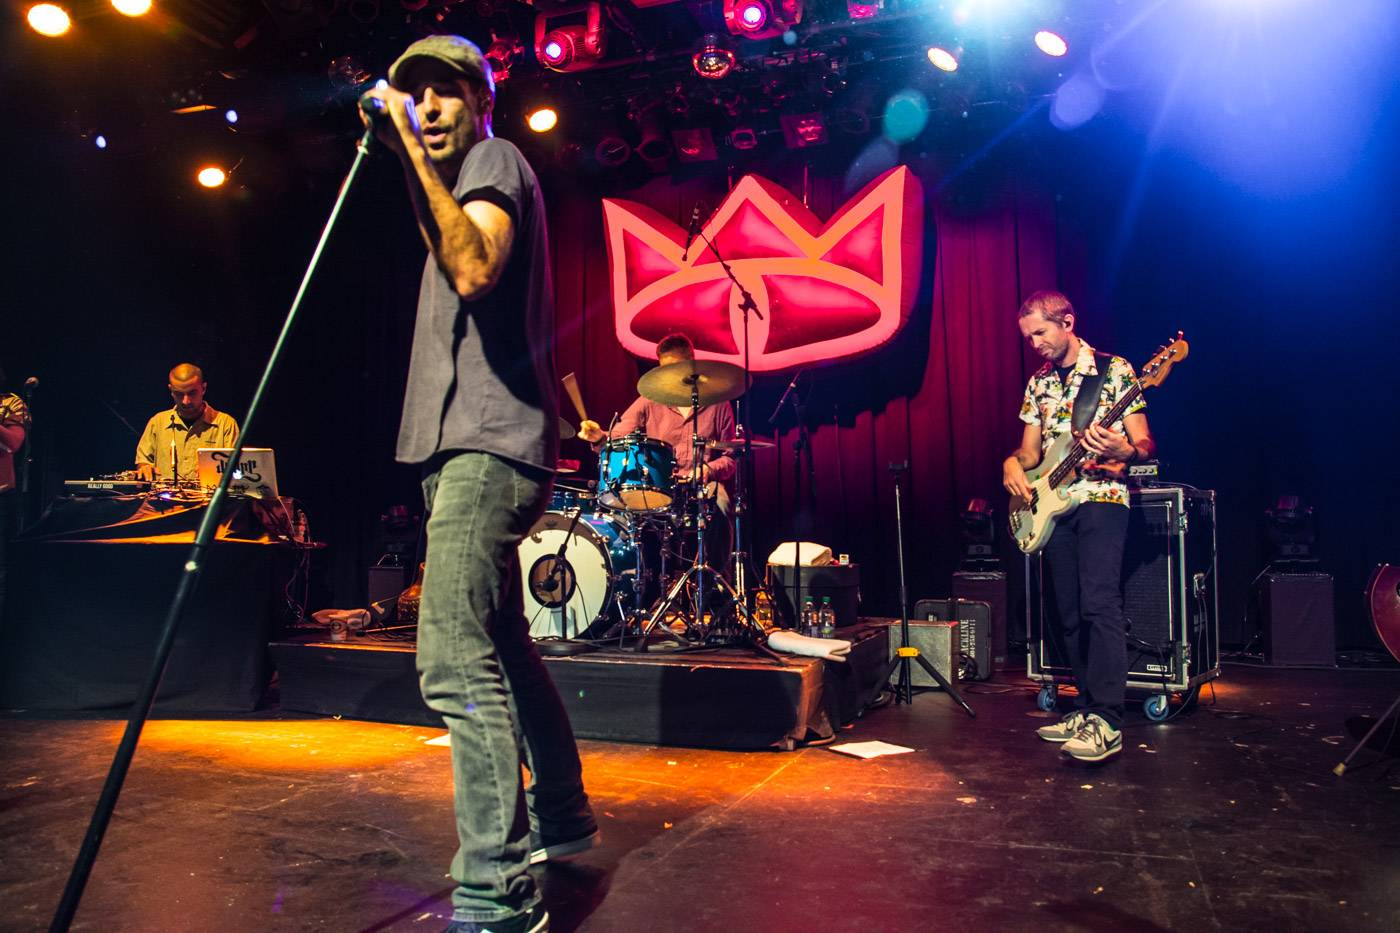 Cat Empire at the Commodore Ballroom, Vancouver, Apr. 3 2015. Pavel Boiko photo.